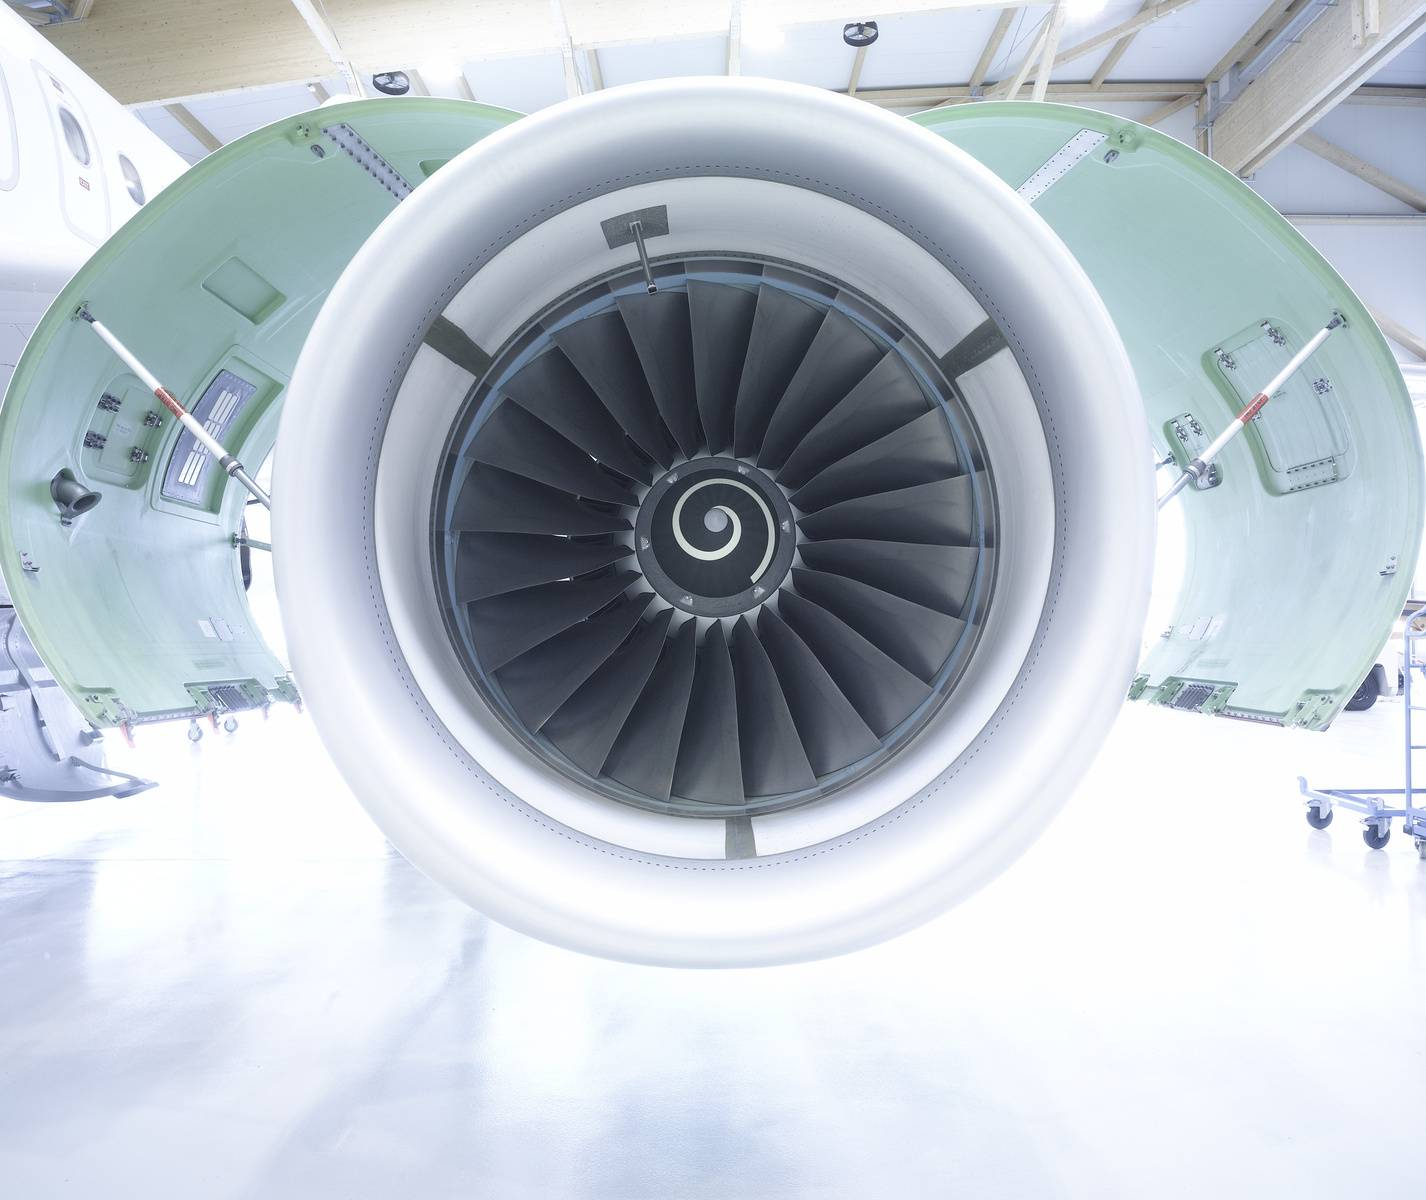 Aeroplane Engine